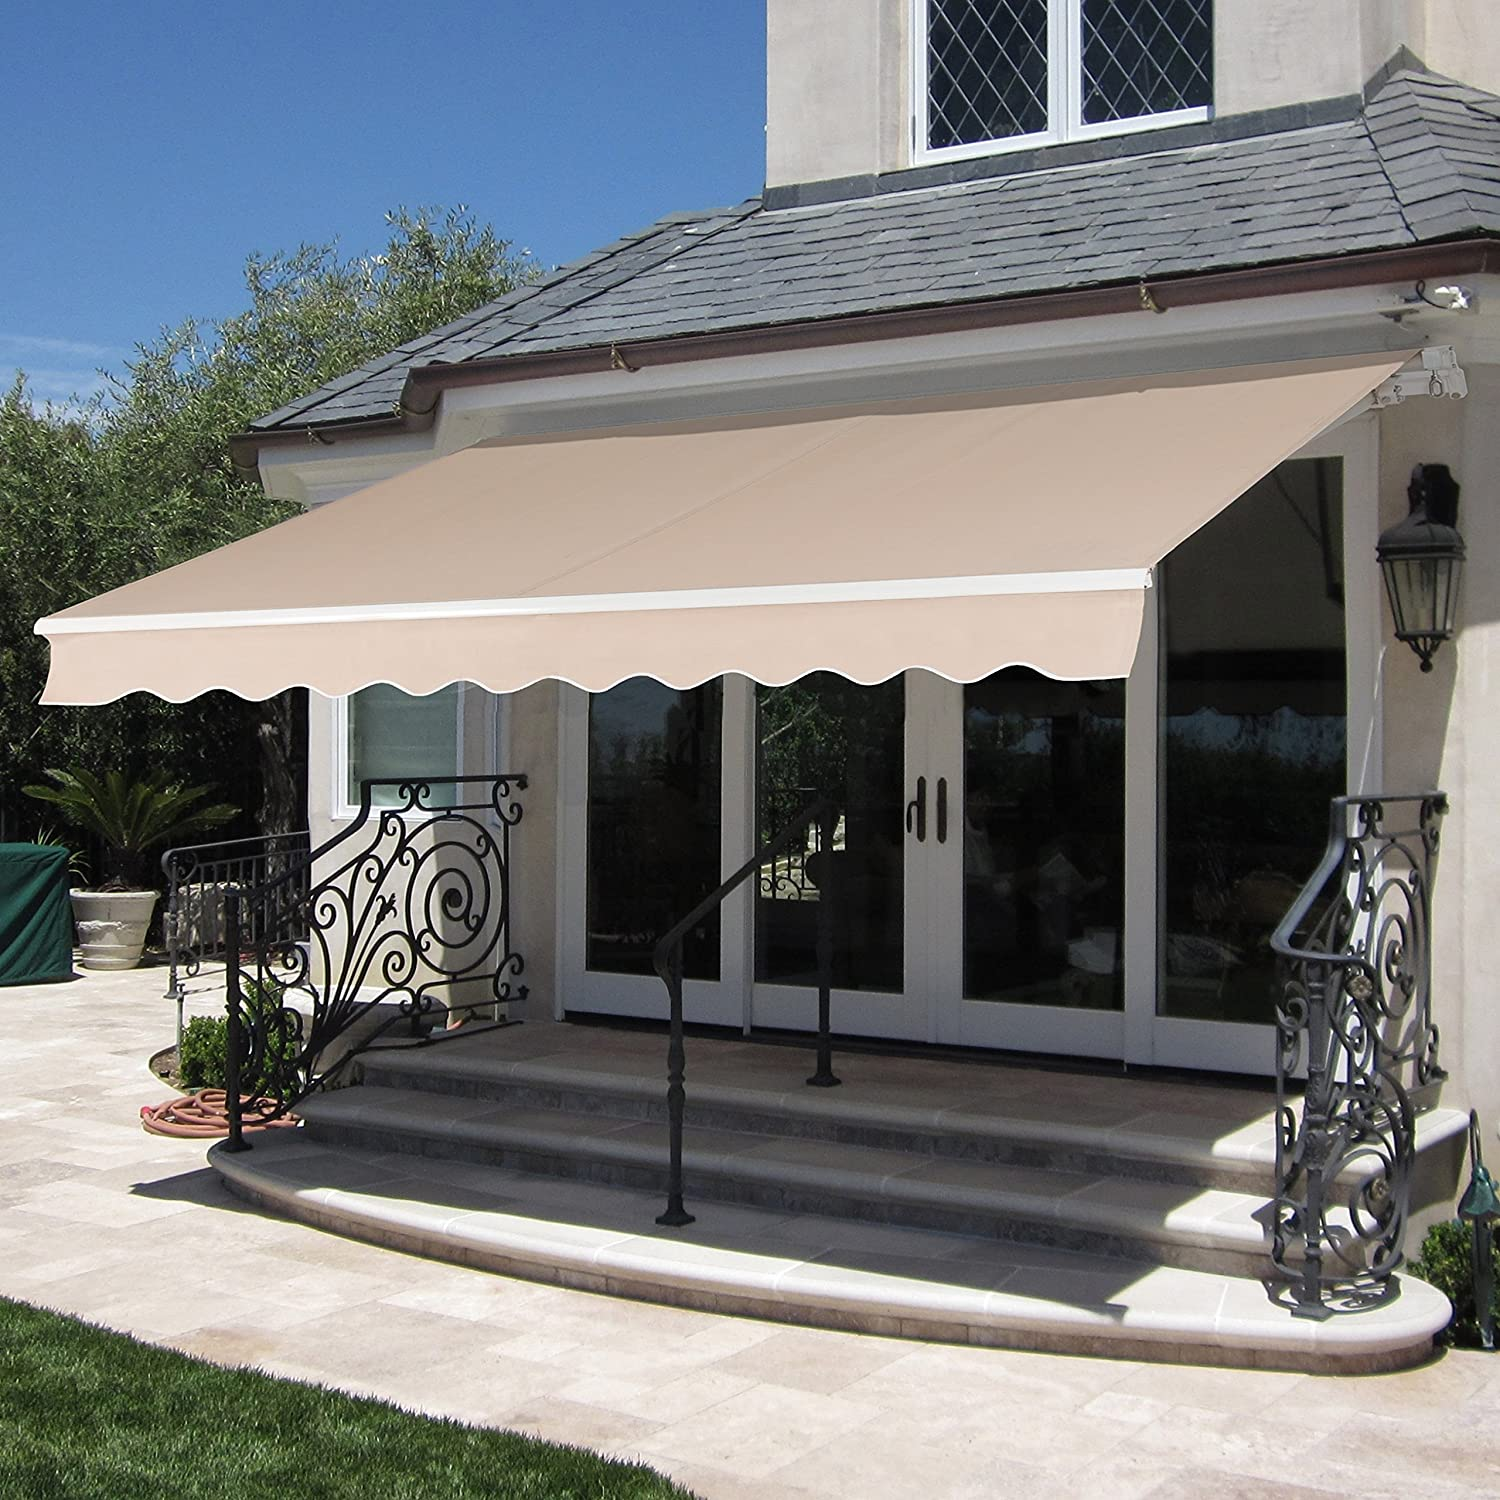 Best Choice Products Patio Manual Patio 8.2u0027x6.5u0027 Retractable Deck Awning  Sunshade Shelter Canopy Beige